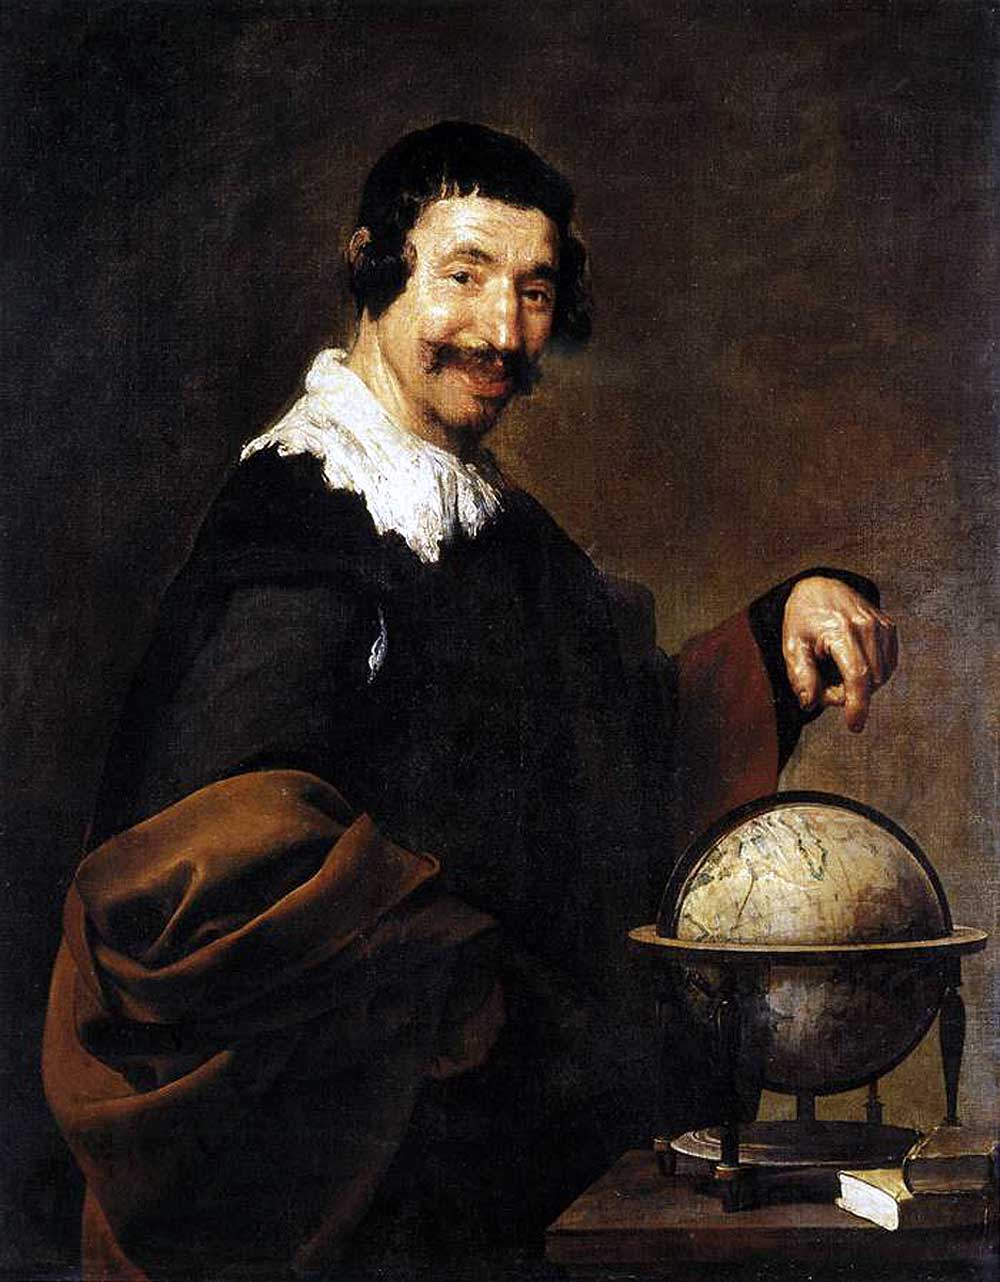 Democritus, ca. 1629, by Diego Velazquez (Spanish, 1599-1660). Oil on canvas, 101 x 81 cm. Musée Des Beaux-Arts, 822.1.16.